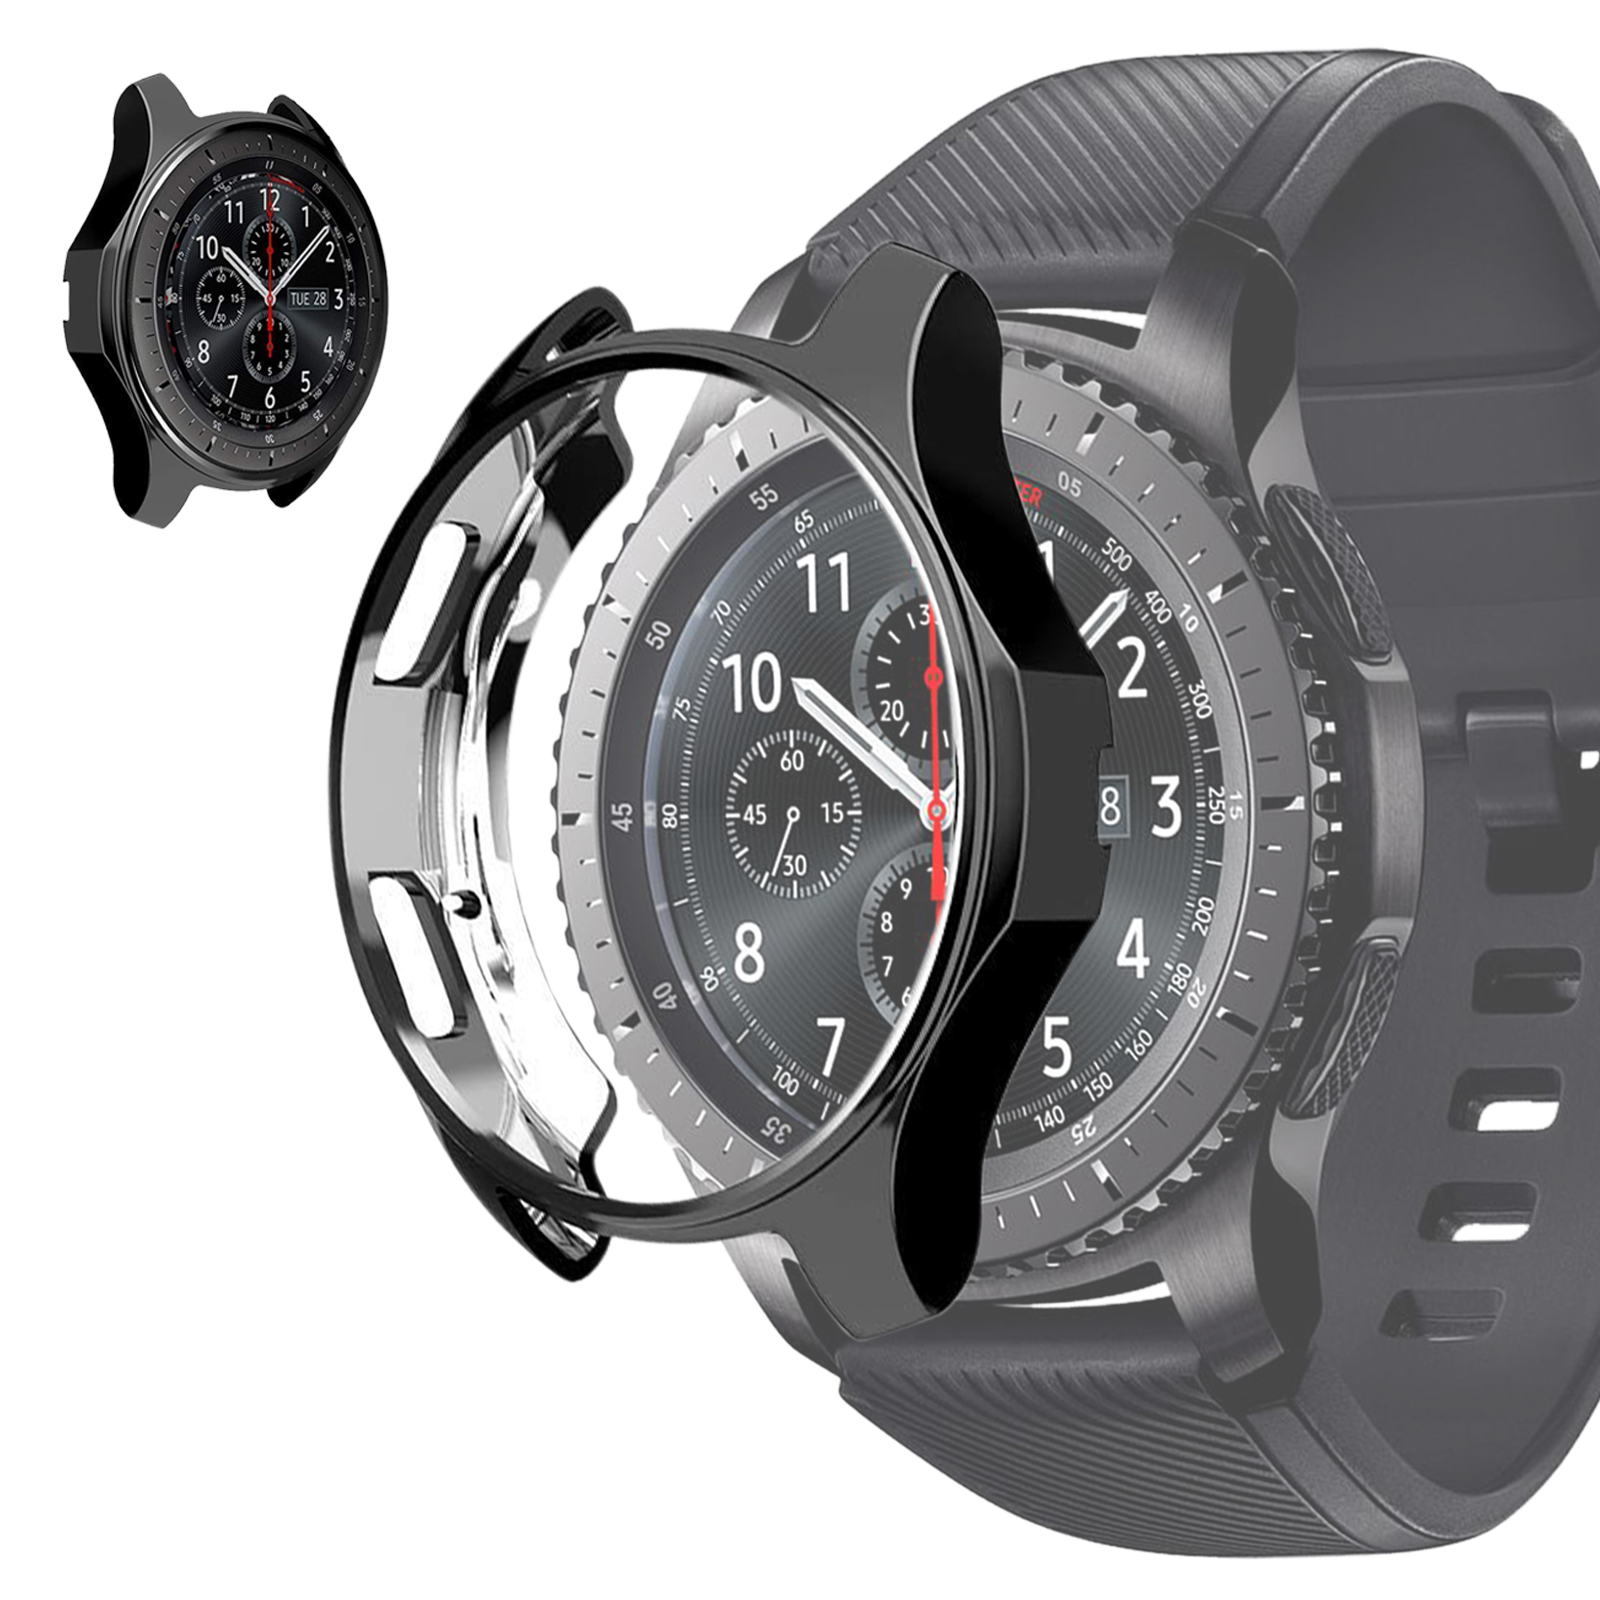 Soft-TPU-Slim-Smart-Watch-Case-Cover-For-Samsung-Gear-S3-Frontier-Galaxy-46mm thumbnail 10